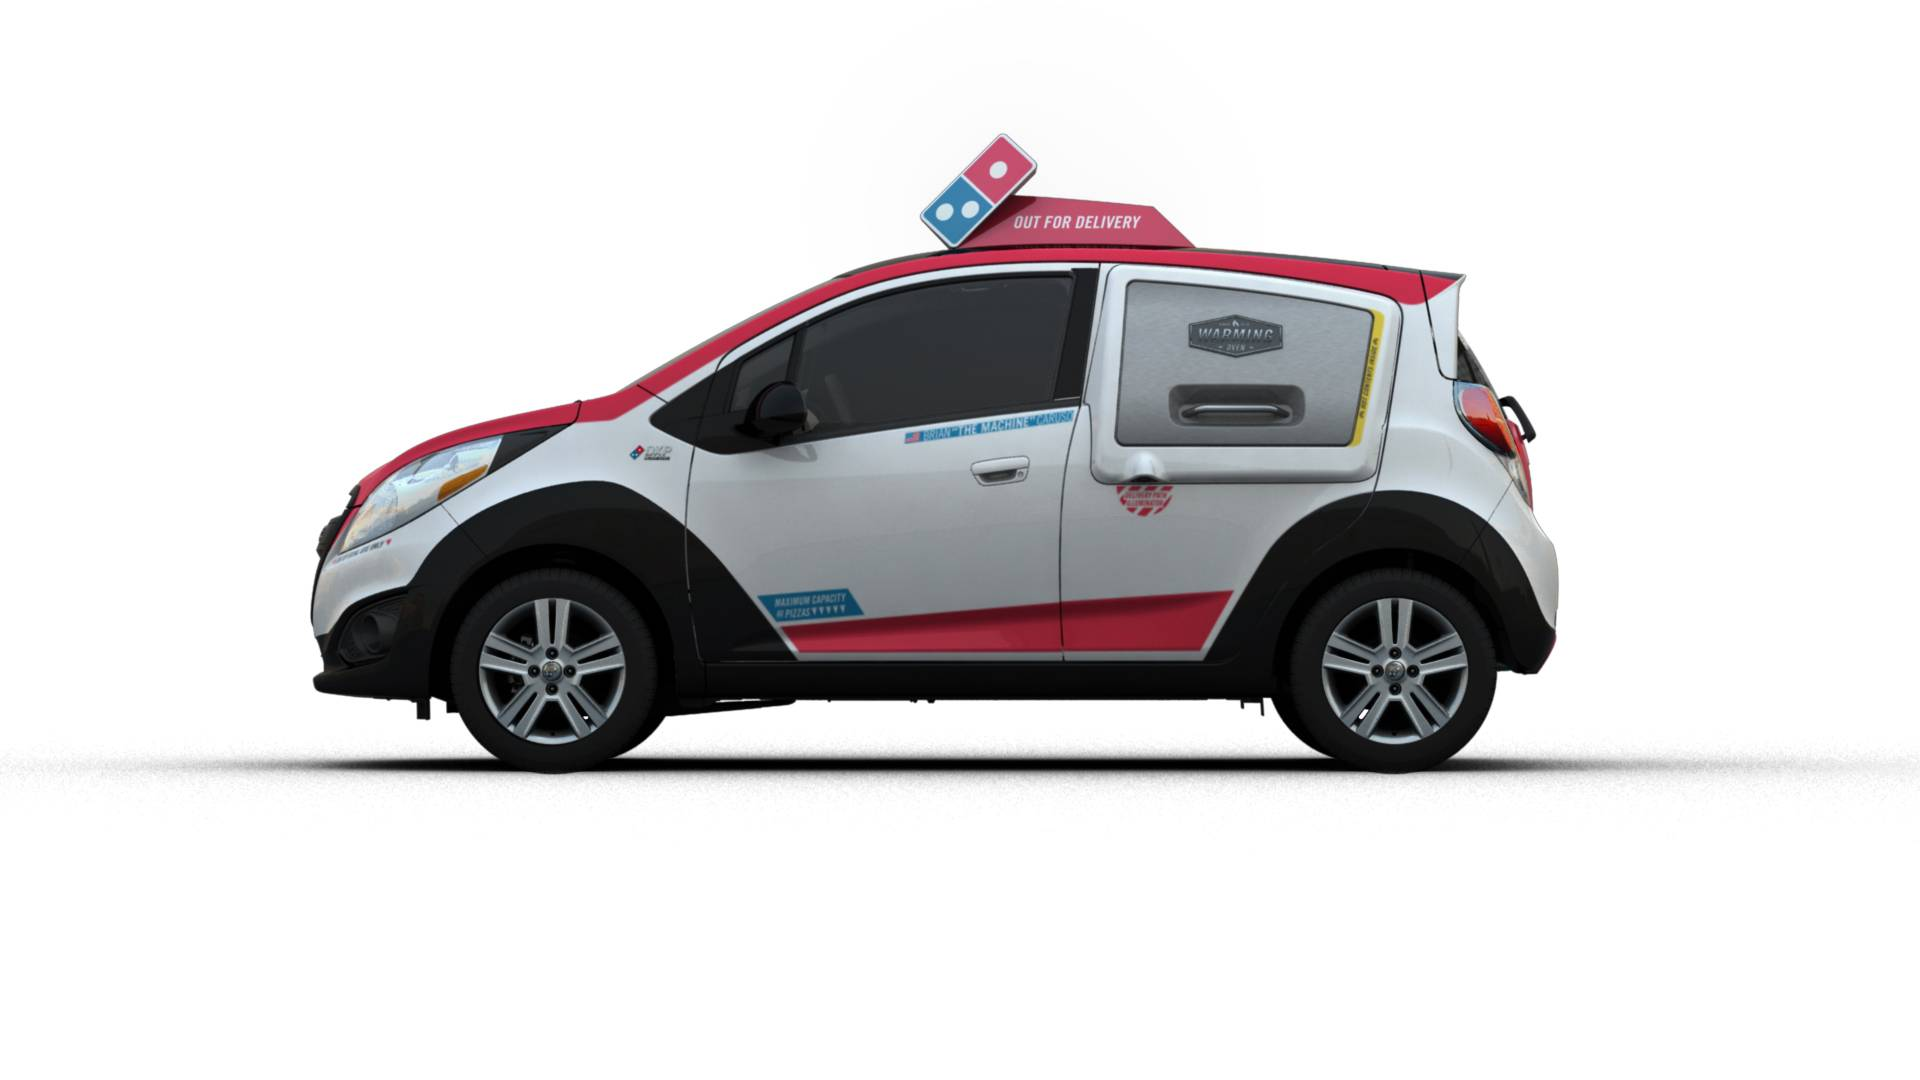 Domino's is rolling out 100 test vehicles emblazoned with the company's logo and red-and-blue colors, as well as an oven in the rear that can keep pizzas warm during transit. Domino's plans to bring the cars to 25 markets, including Boston, Dallas, Detroit, Houston, New Orleans and Seattle, according to a statement Wednesday.